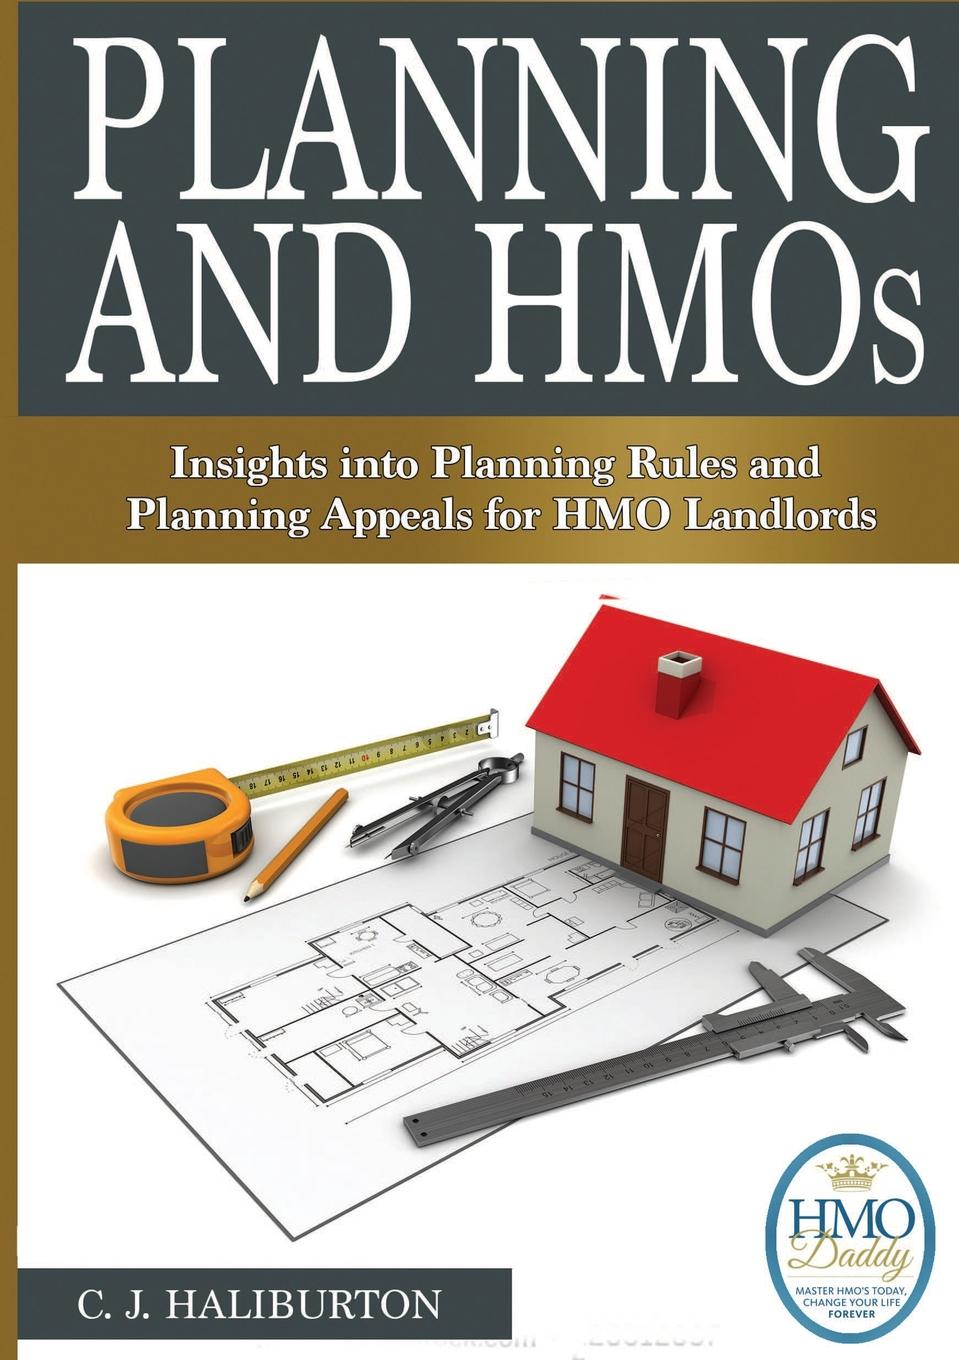 Planning and HMOs. Insights into Planning Rules and Planning Appeals for HMO Landlords HMO landlords provide low-cost flexible housing desperately needed...